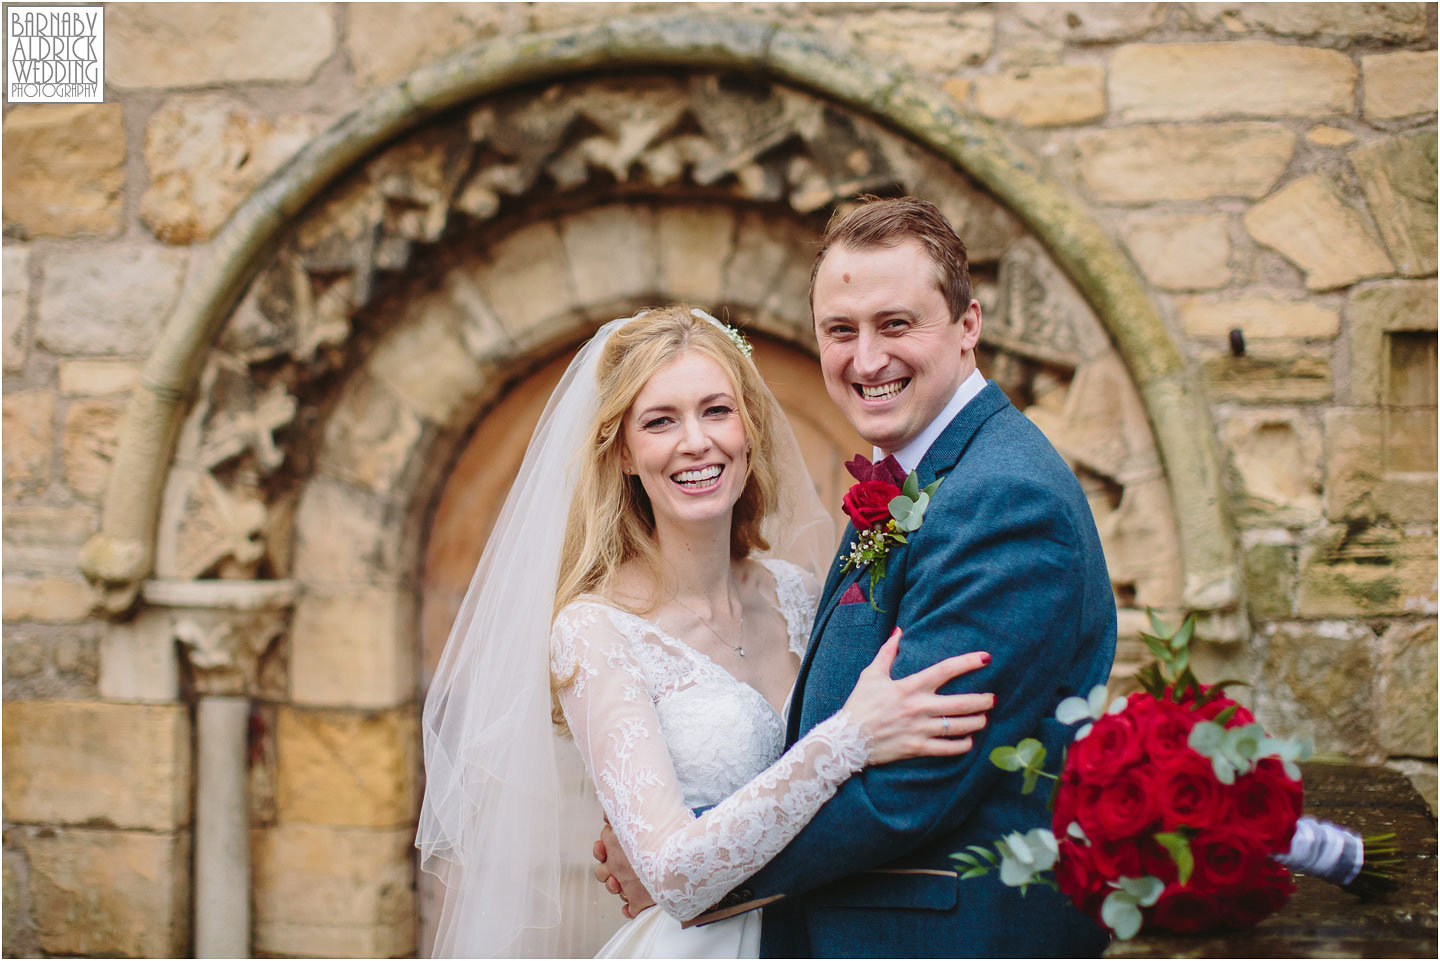 Couple Portraits at the Priory in Wetherby, Priory Cottages Barn Wedding Venue Photos, Yorkshire Barn Venue Photos